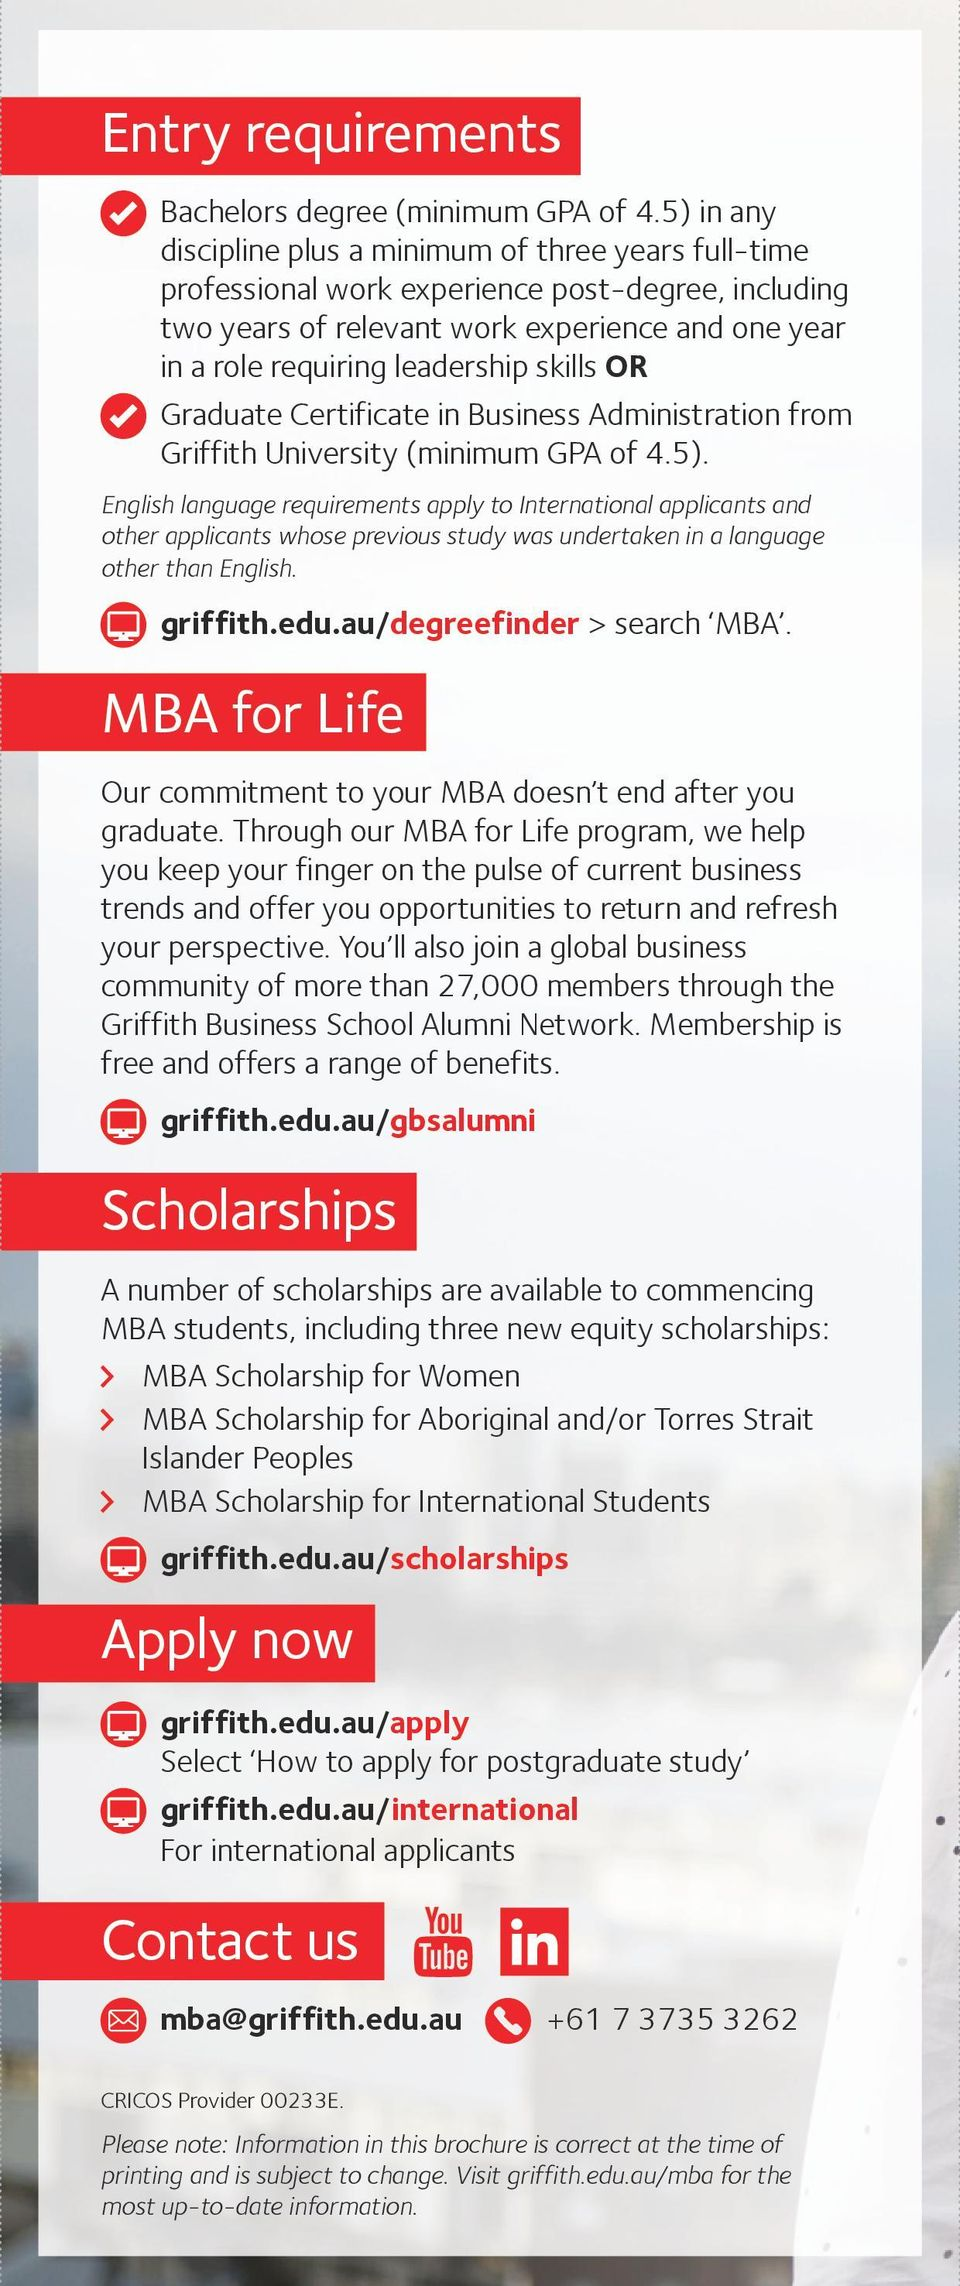 skills OR Graduate Certificate in Business Administration from Griffith University (minimum GPA of 4.5).